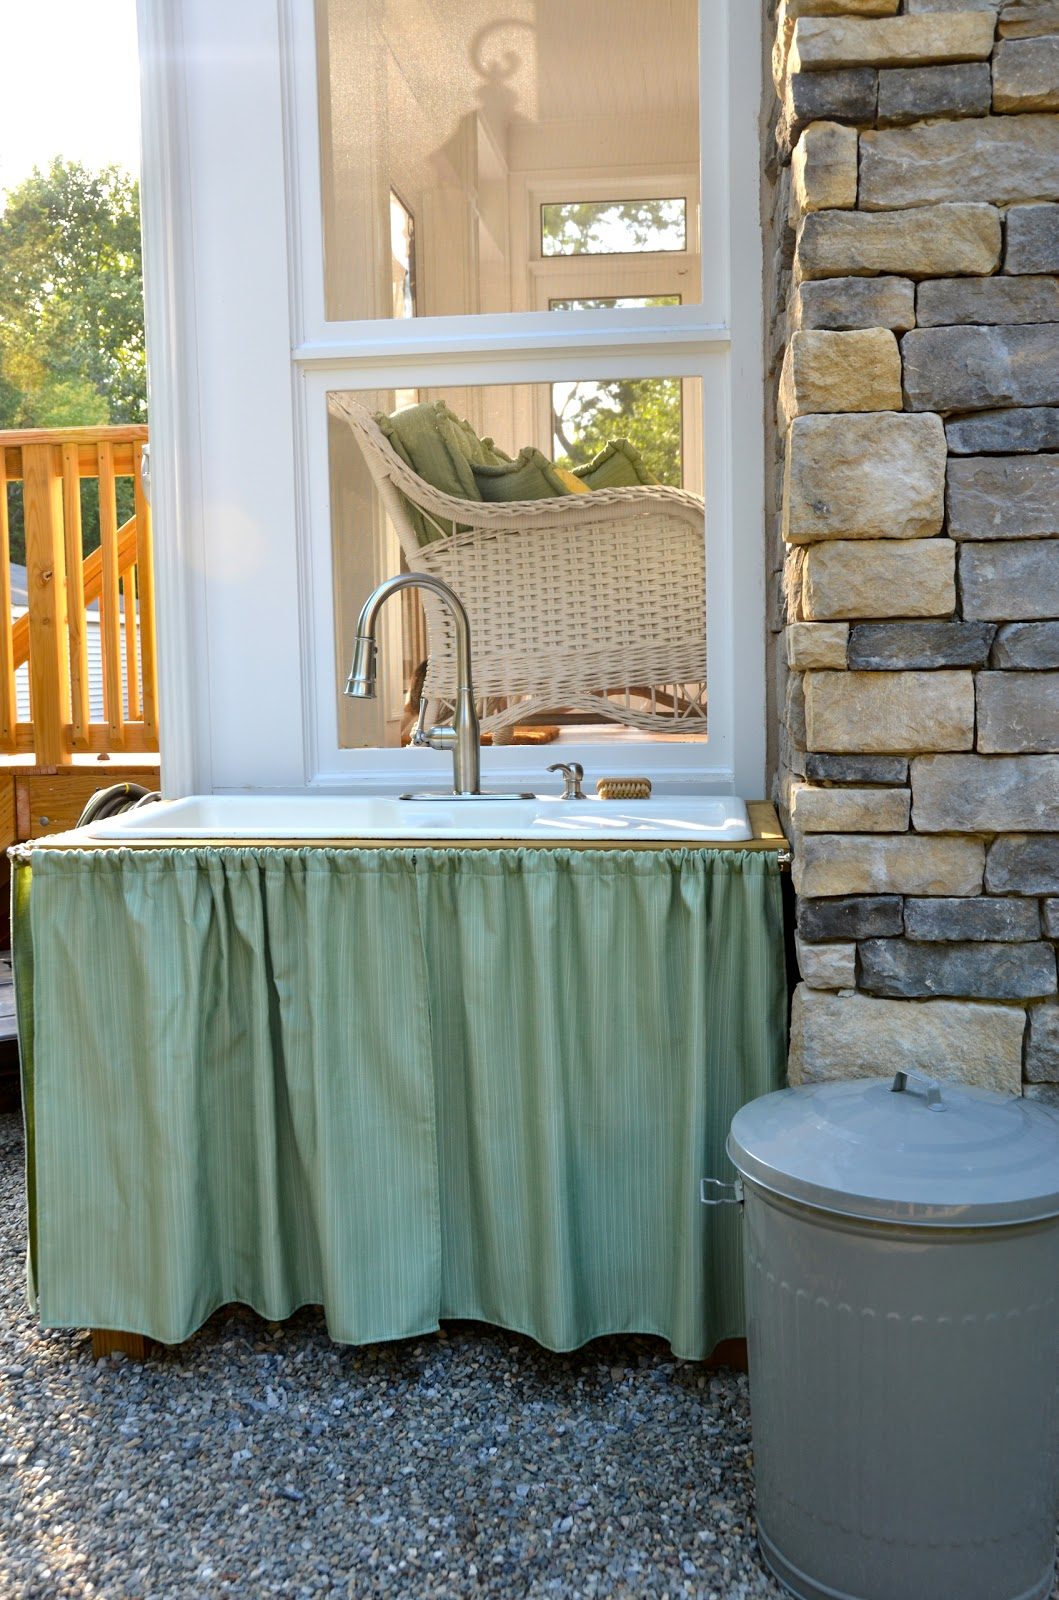 The Princess and The Frog Blog: An Outdoor Sink on Outdoor Patio Sink id=14089